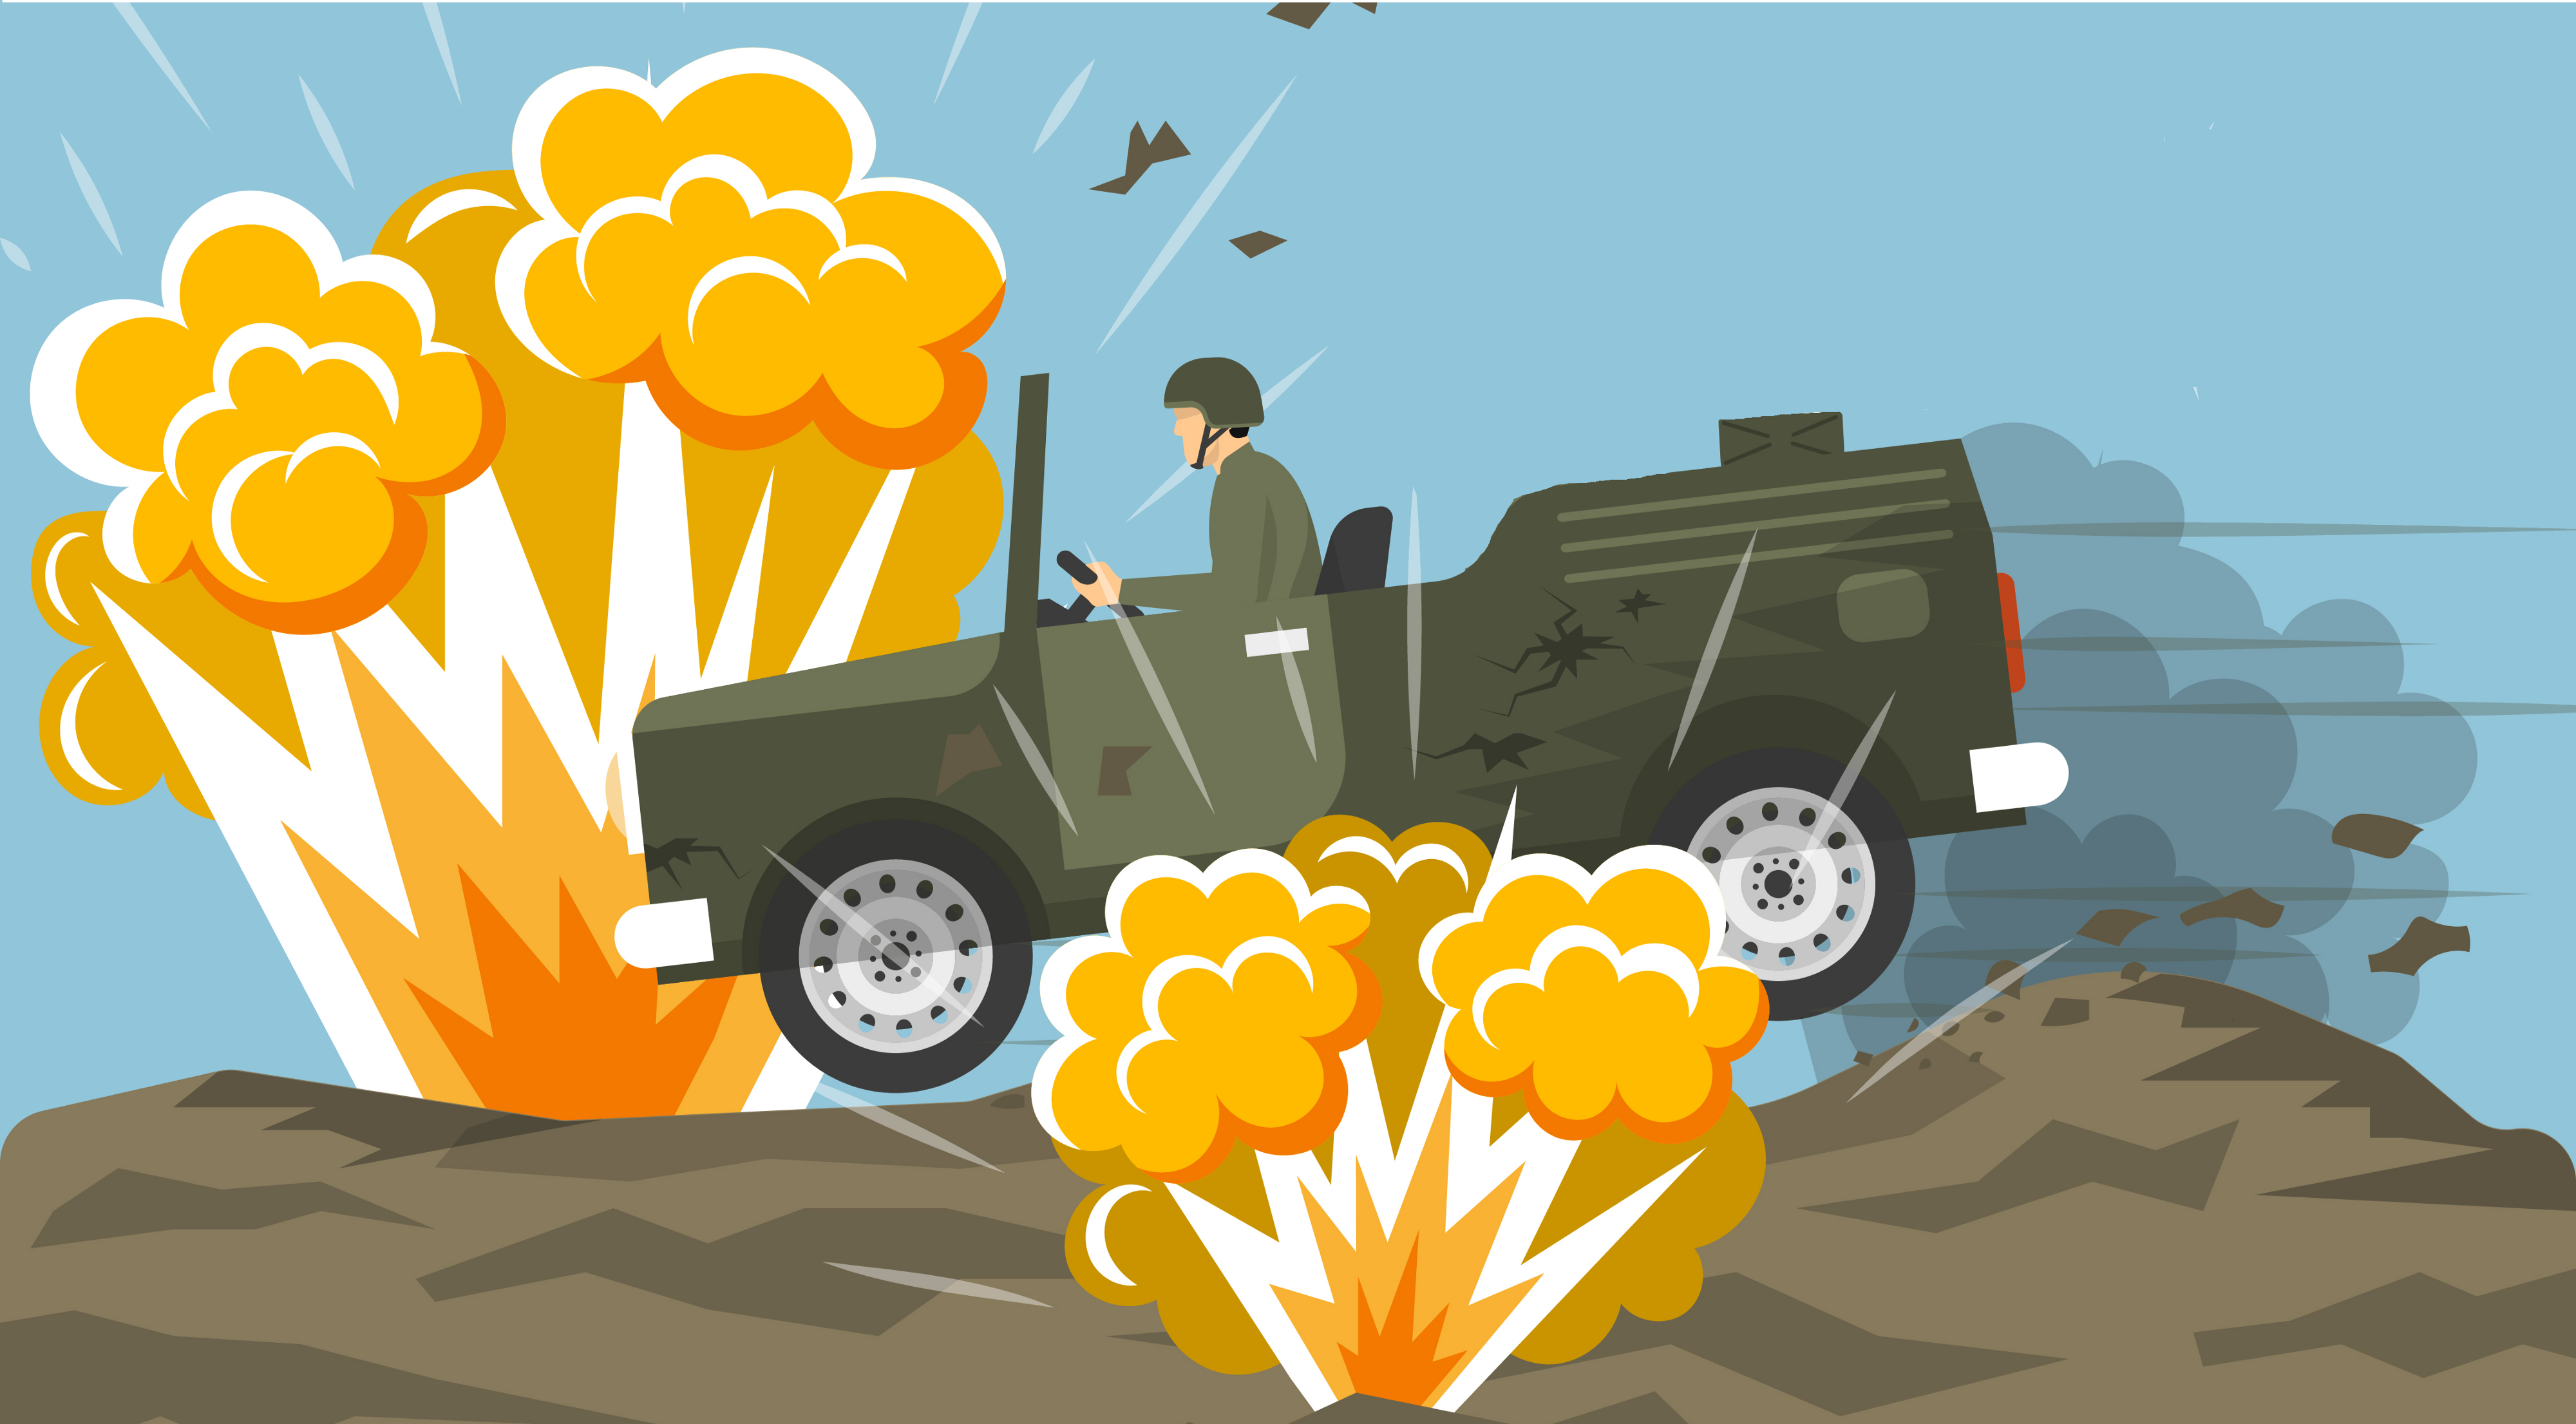 [🎨] A military jeep driving through a minefield, symbolizing pitfalls.